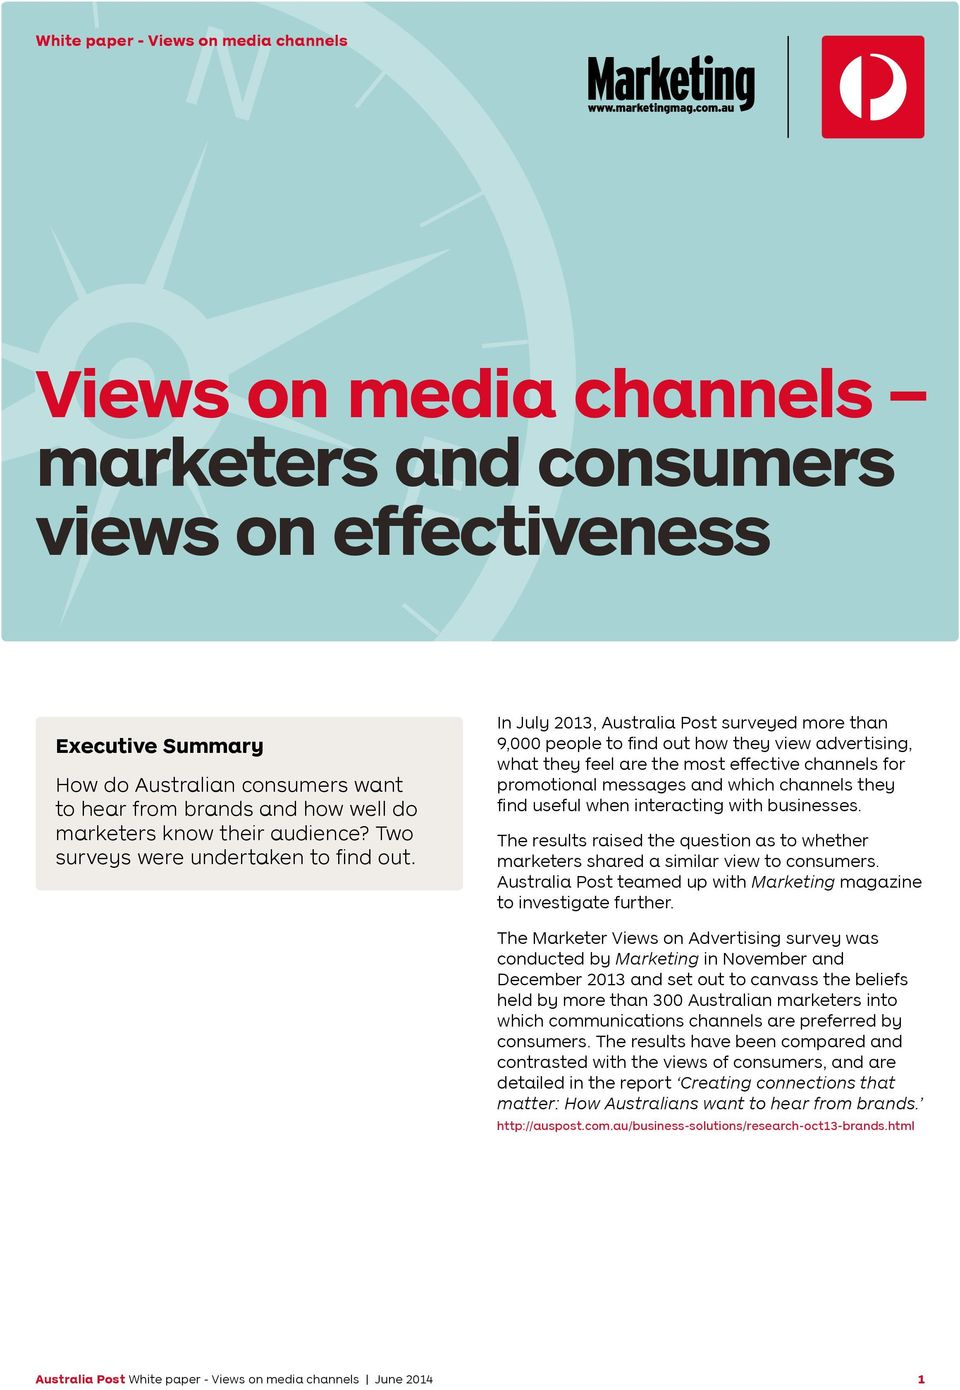 In July 2013, Australia Post surveyed more than 9,000 people to find out how they view advertising, what they feel are the most effective channels for promotional messages and which channels they